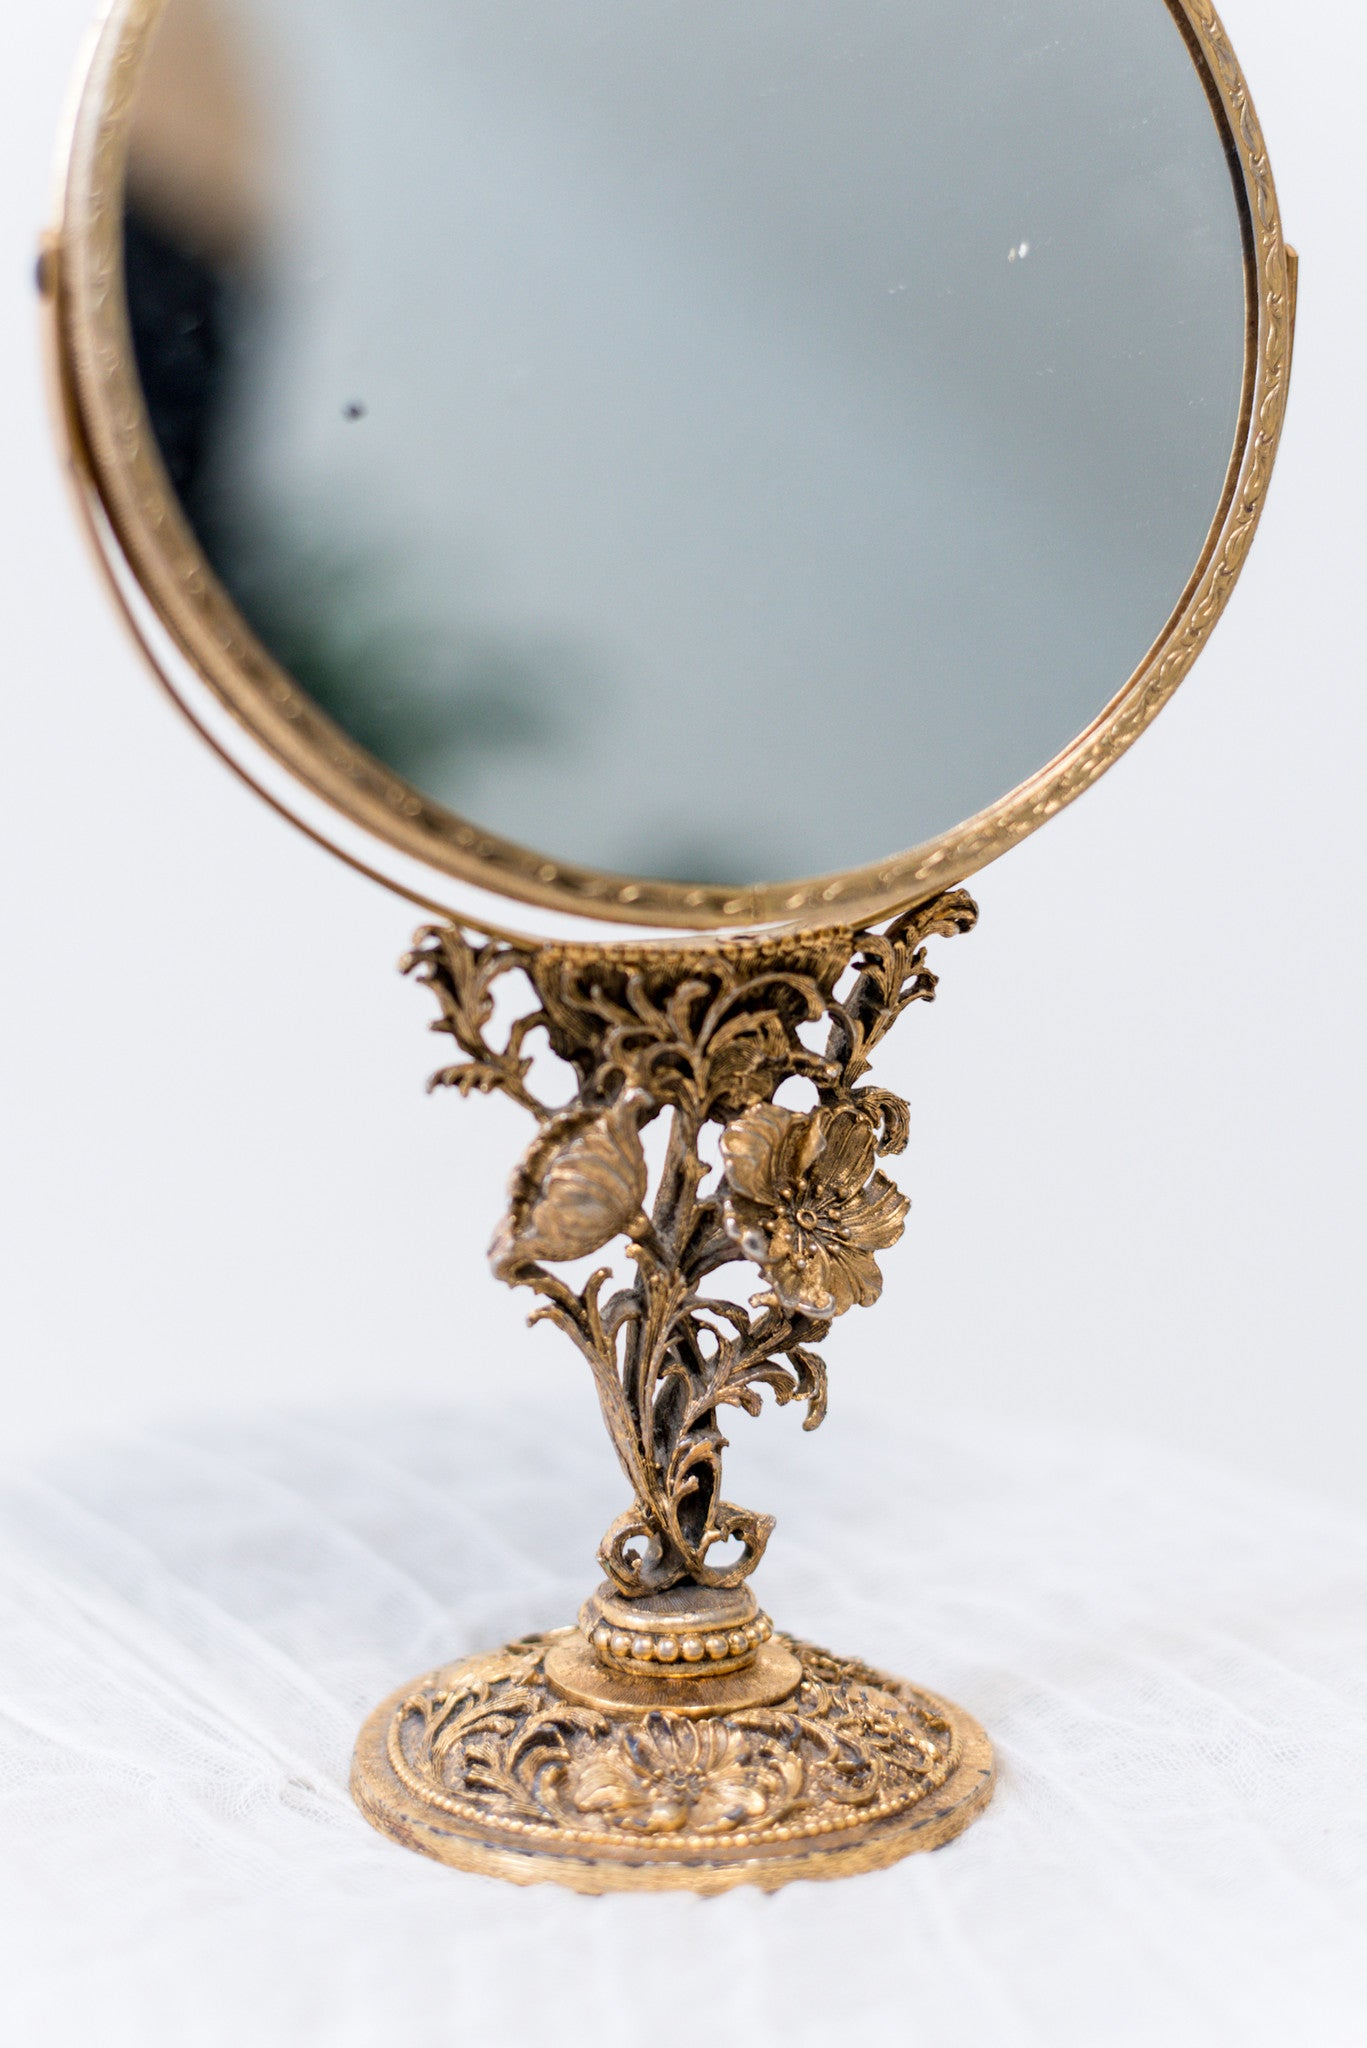 Vintage Brass Small Vanity Mirror G O S S A M E R